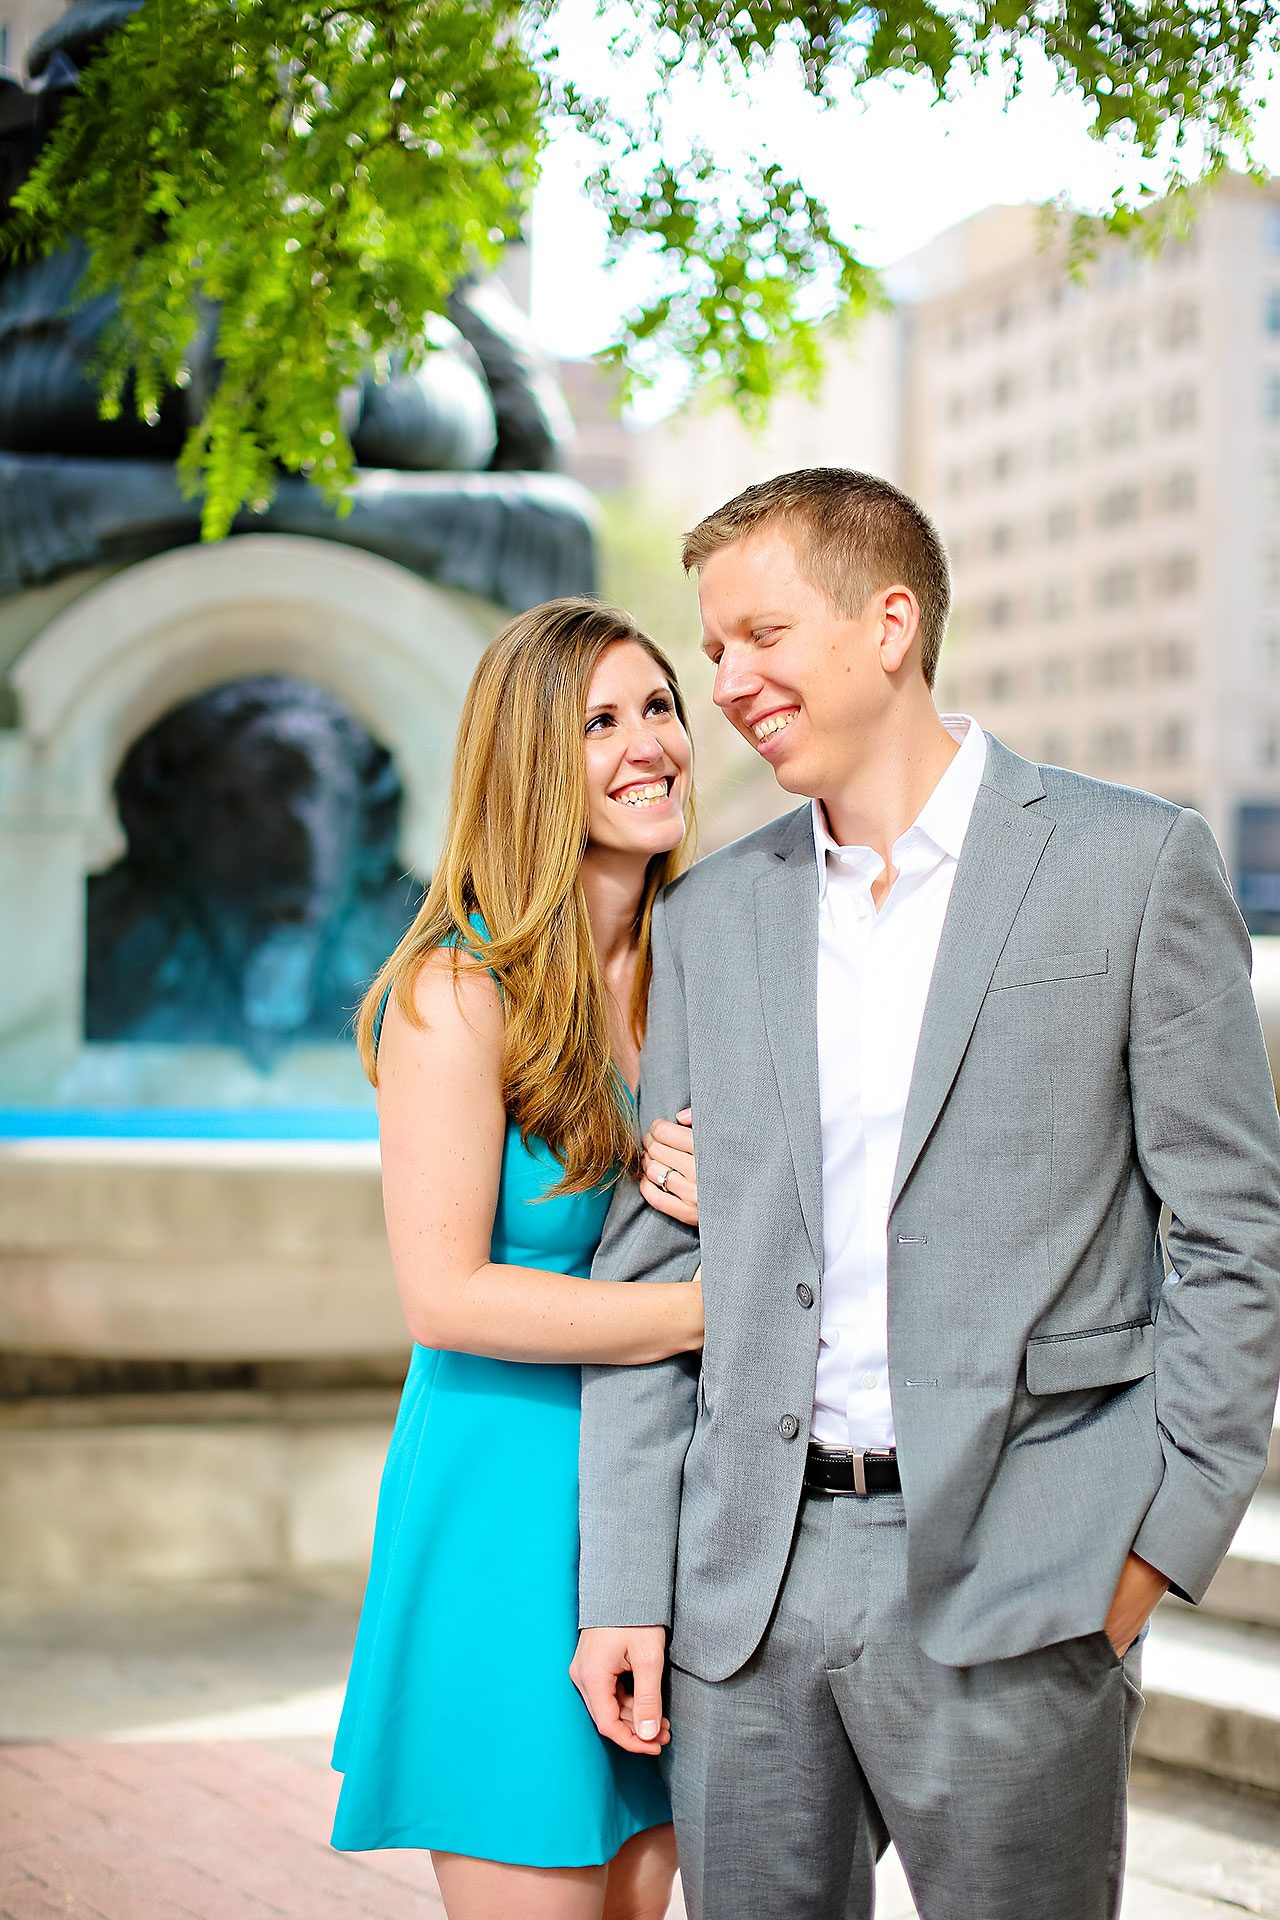 Chelsea Jeff Downtown Indy Engagement Session 049